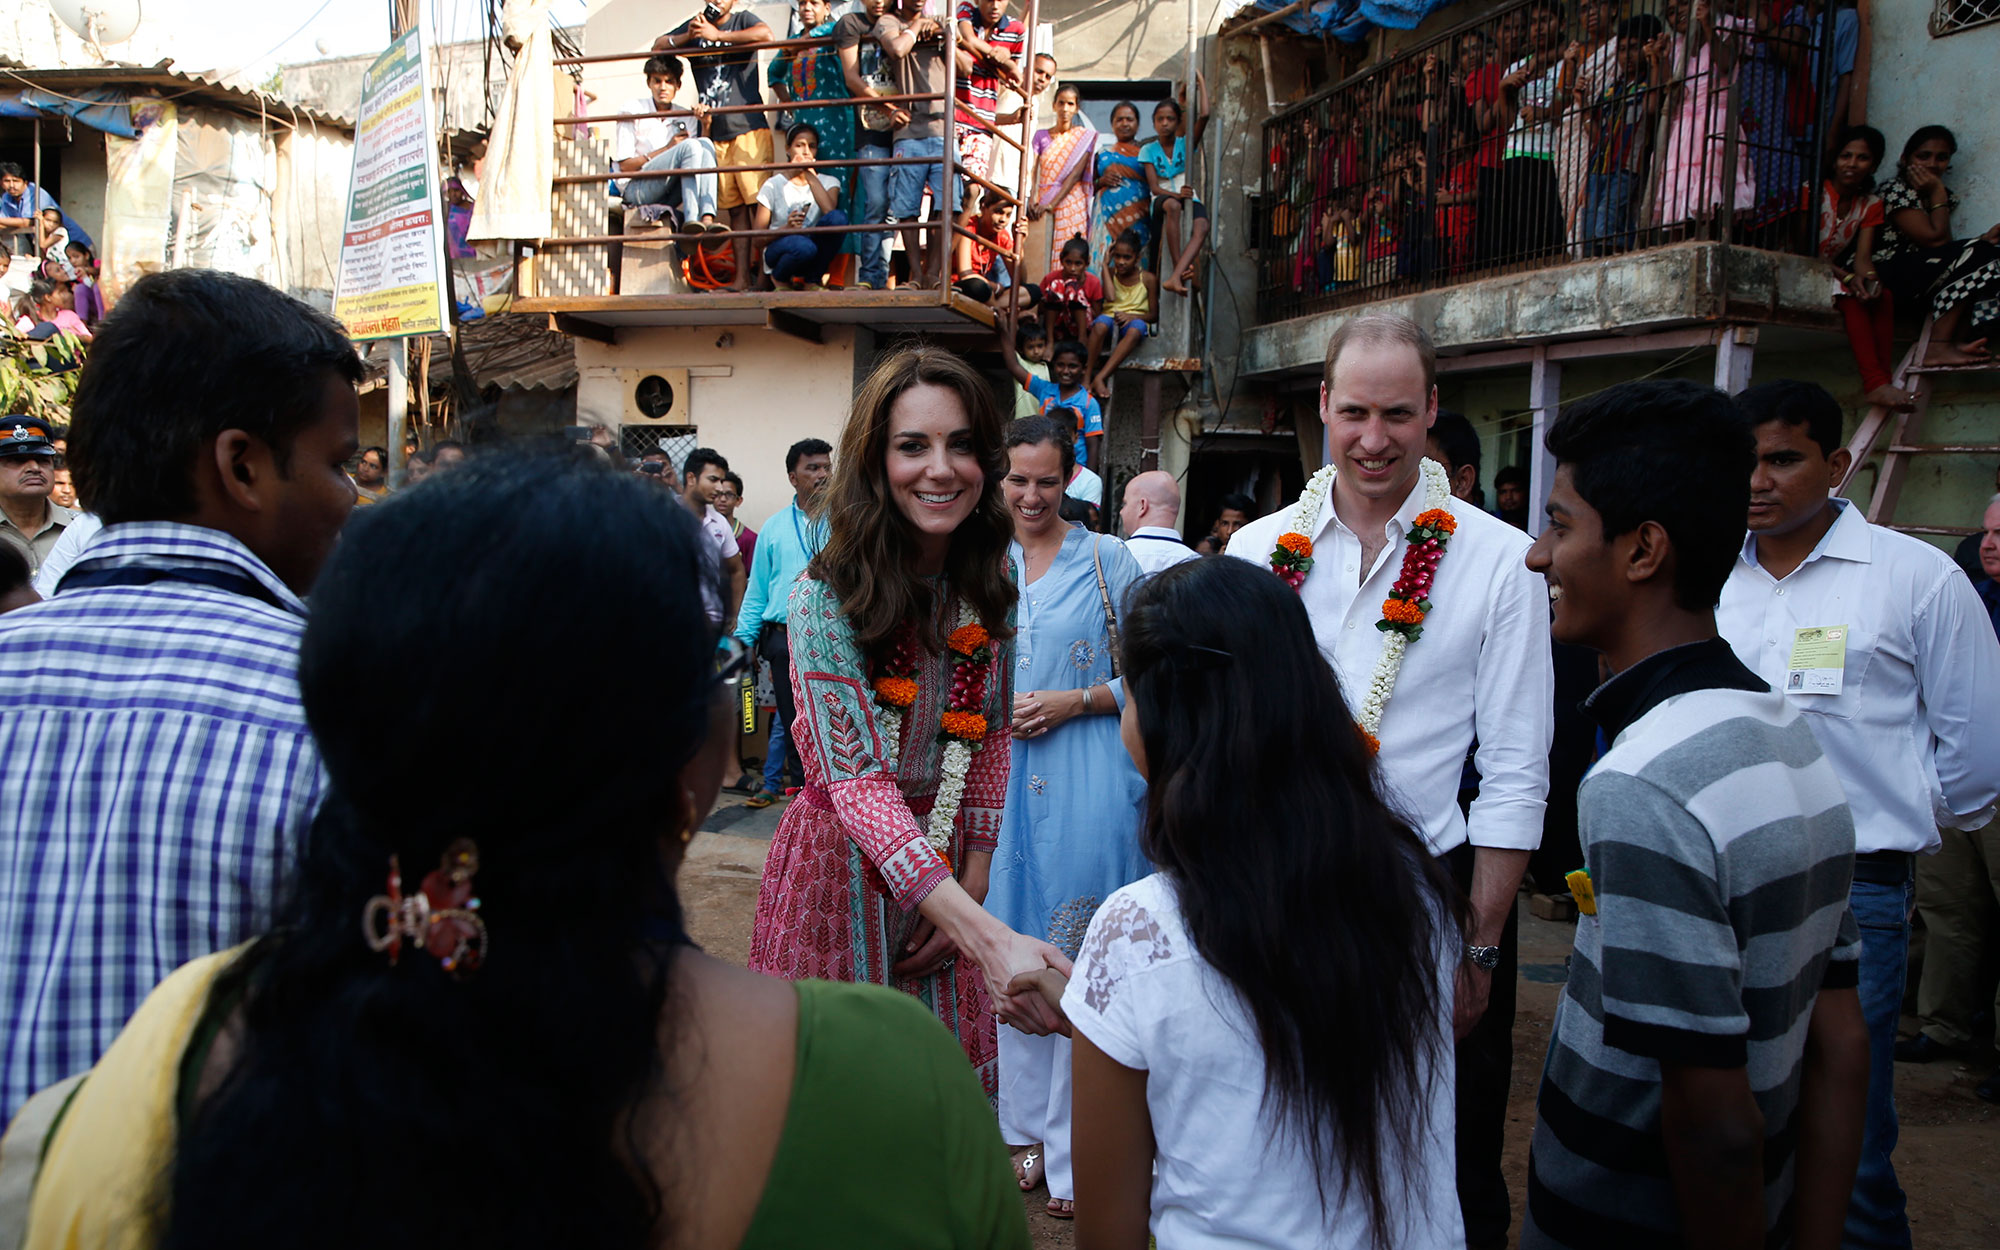 Prince William and Kate Middleton Embark on their Royal Tour of India and Bhutan: Greeting Children